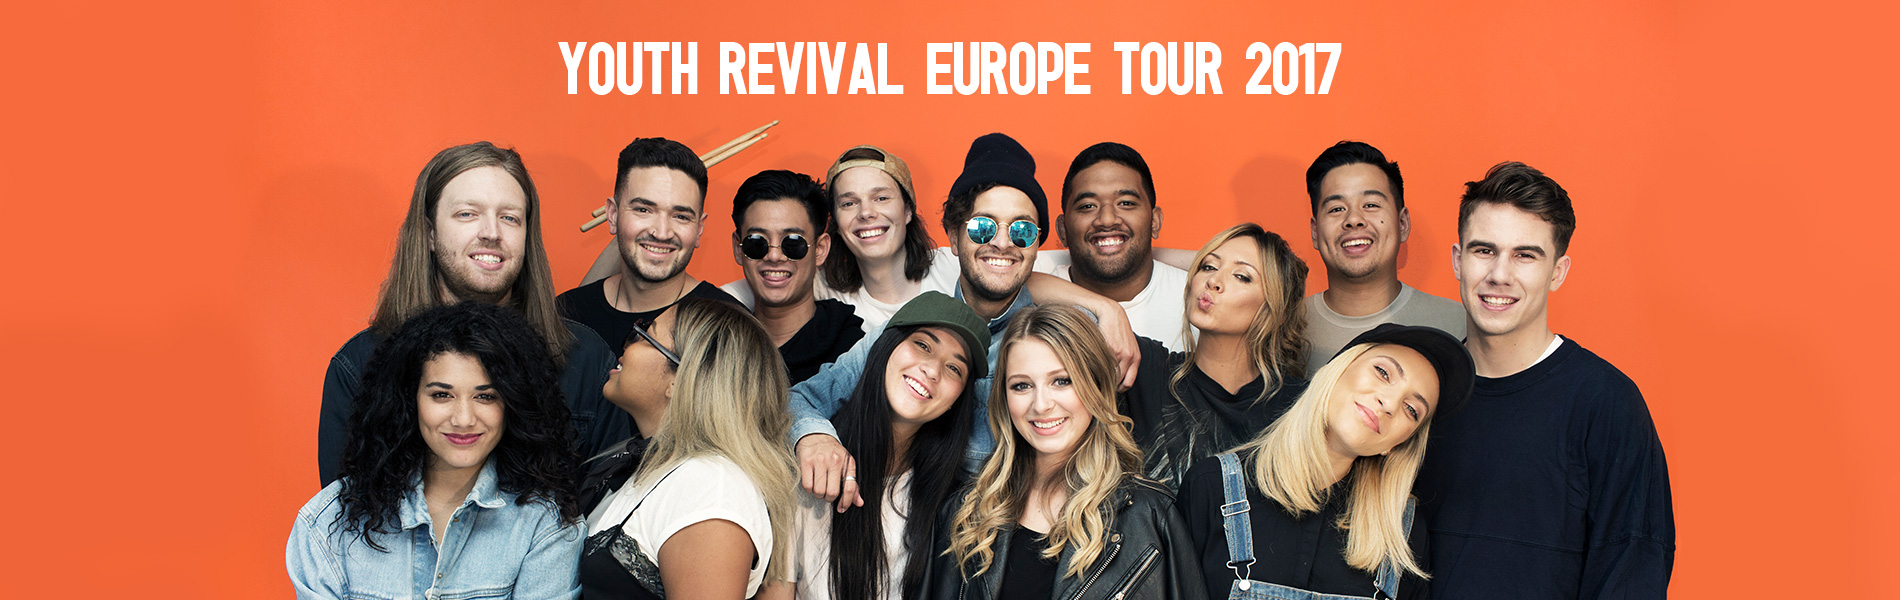 Hillsong Youth Revival Tour